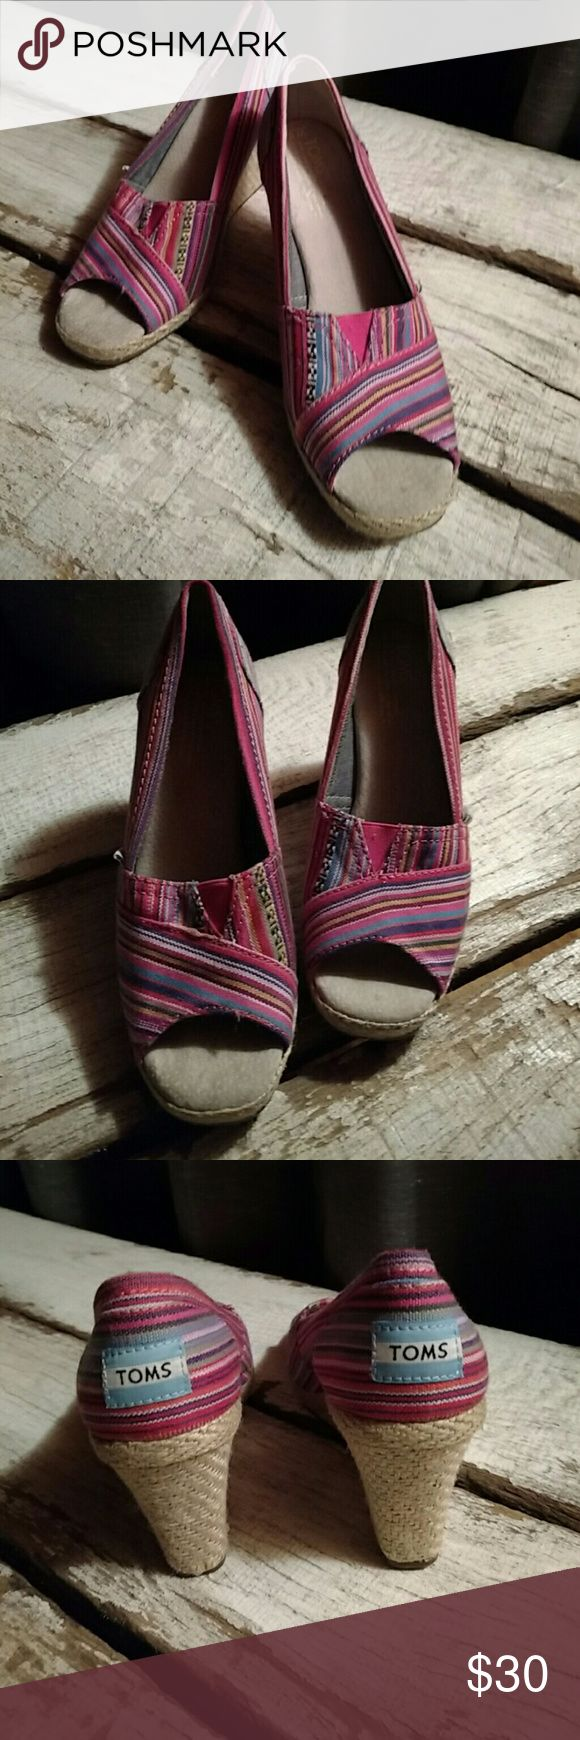 TOMS Wedges 🎨 Super cute and colorfulTom's wedges. Great for spring and summer. Open toe. Burlap bottoms Worn maybe once. No noticeable wear to insides, toes, or bottoms. Mostly pink with blue, white, yellow, orange striped pattern. TOMS Shoes Wedges